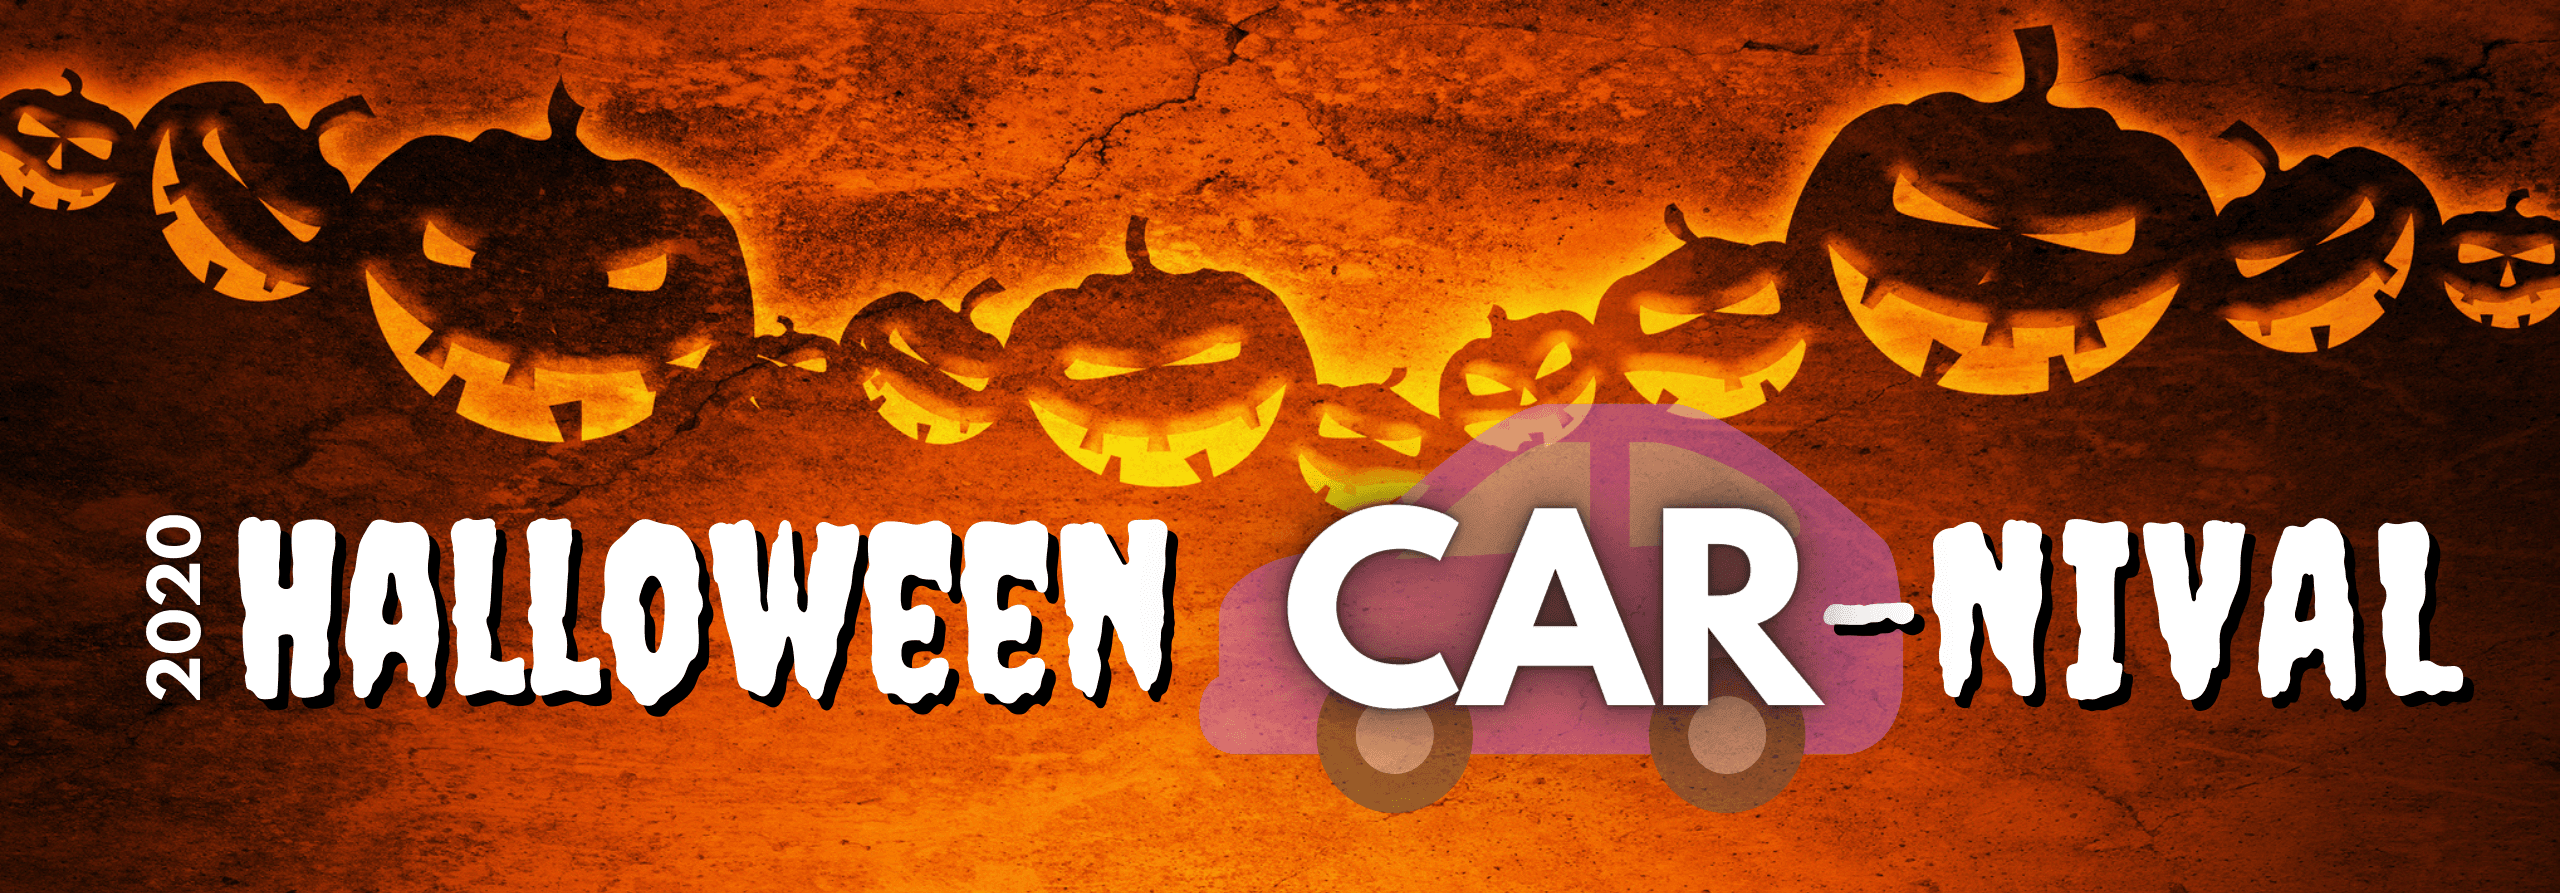 Halloween CAR-nival for Web Page